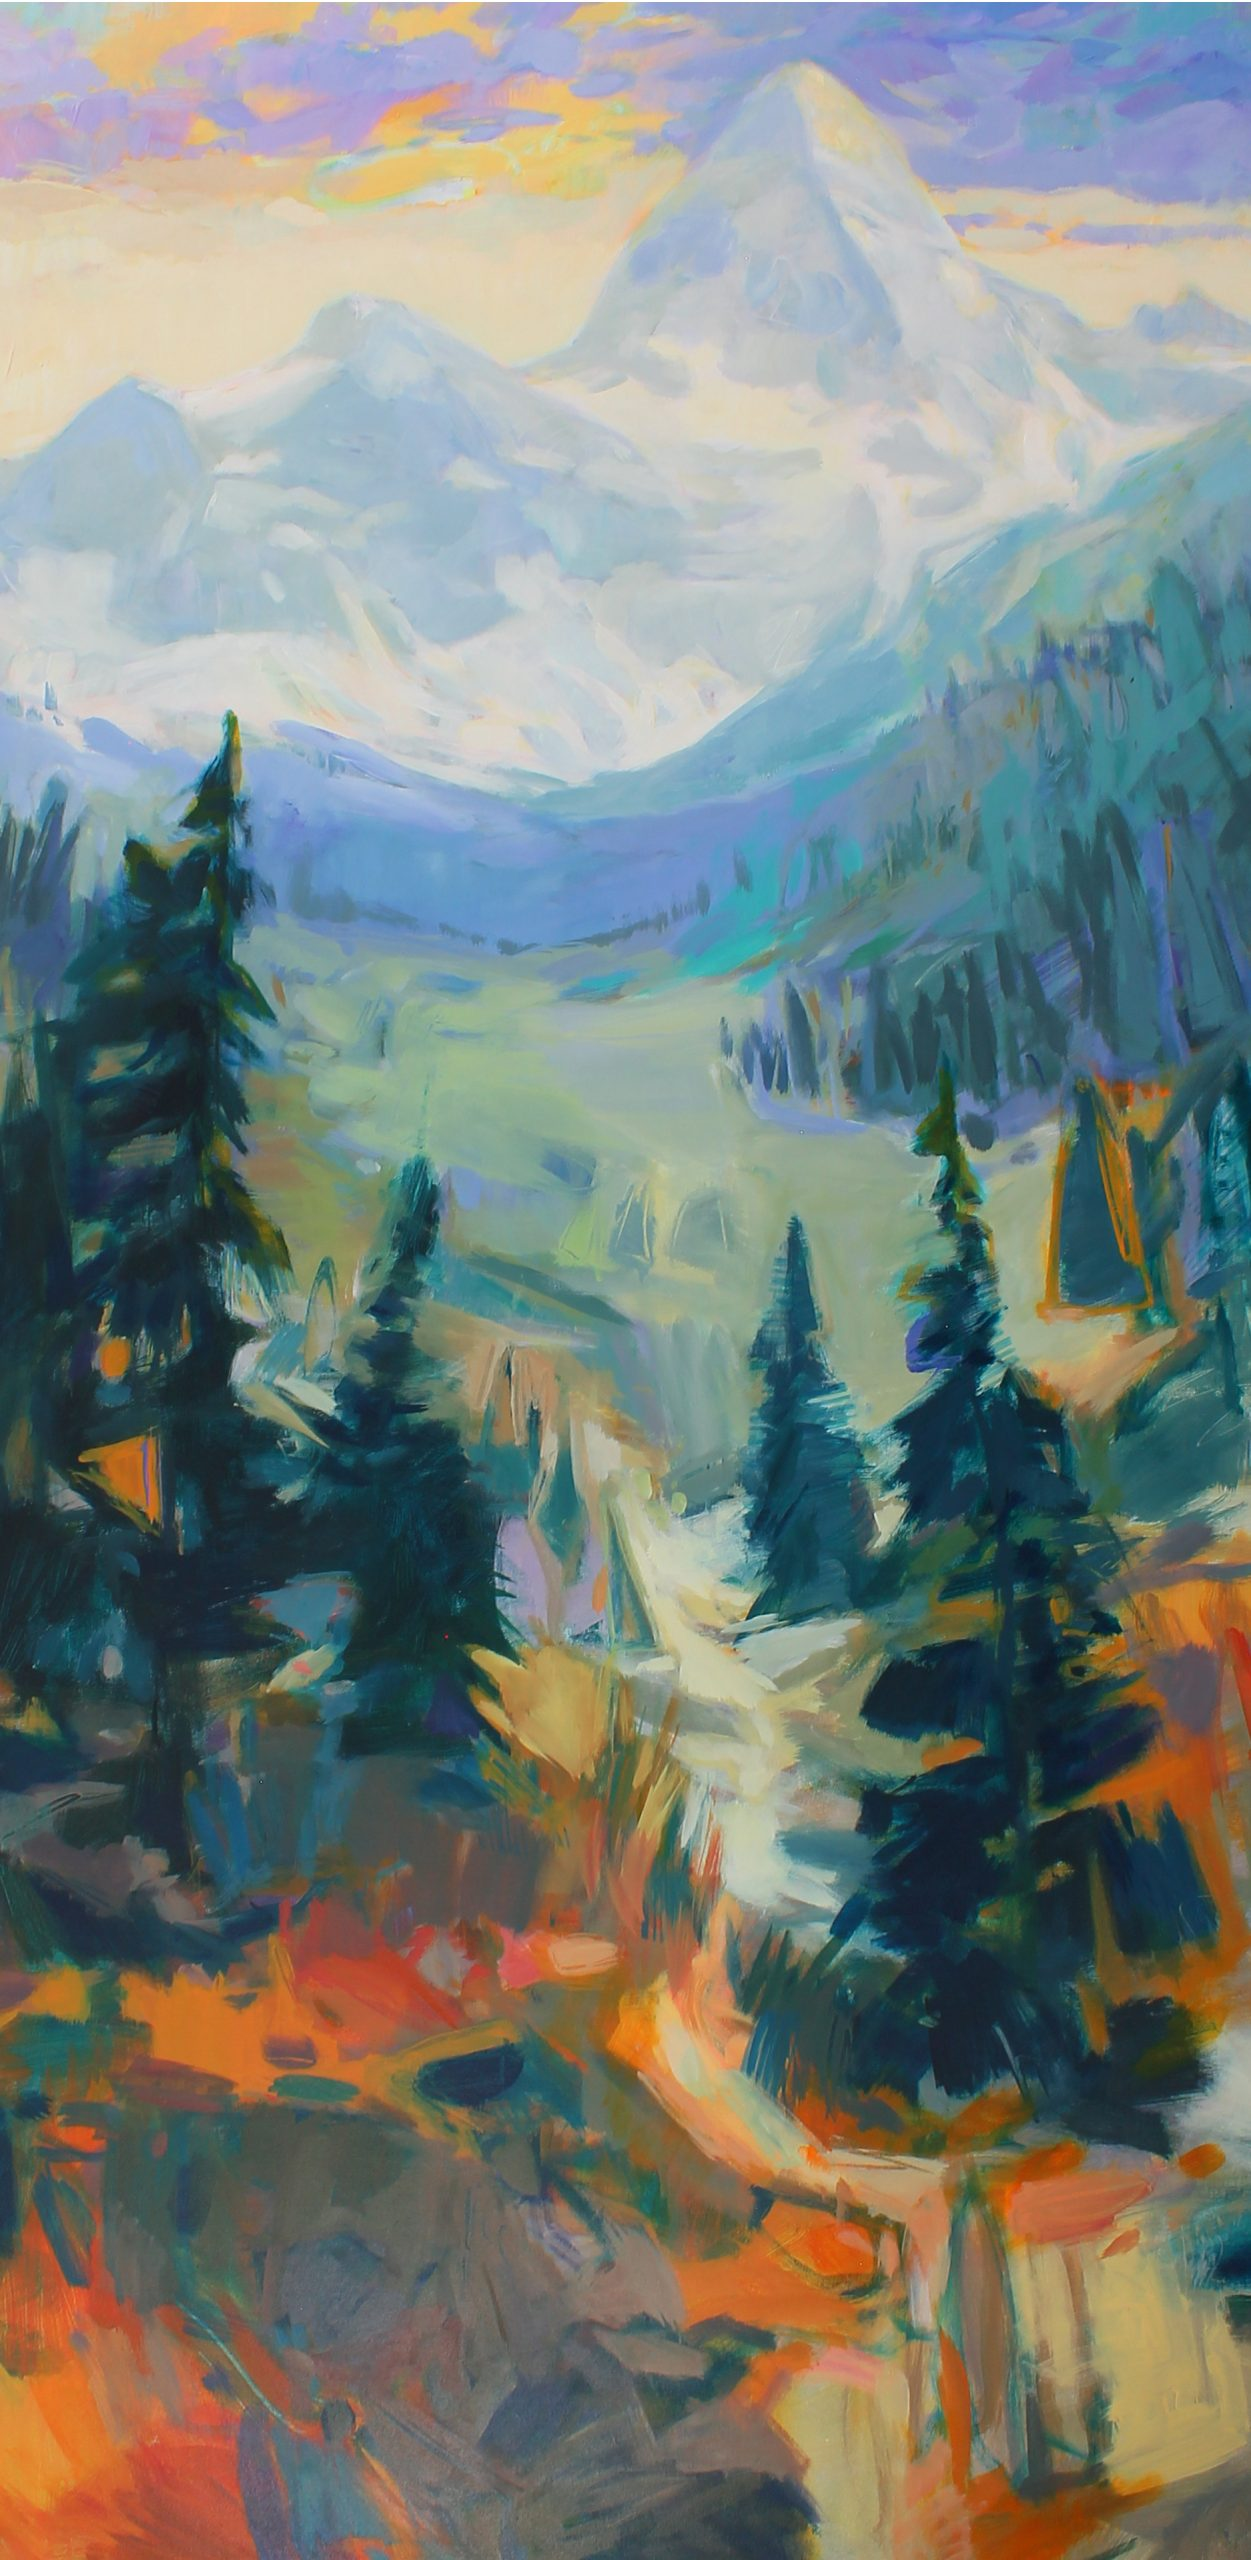 Assiniboine, acrylic landscape painting by Becky Holuk | Effusion Art Gallery + Cast Glass Studio, Invermere BC